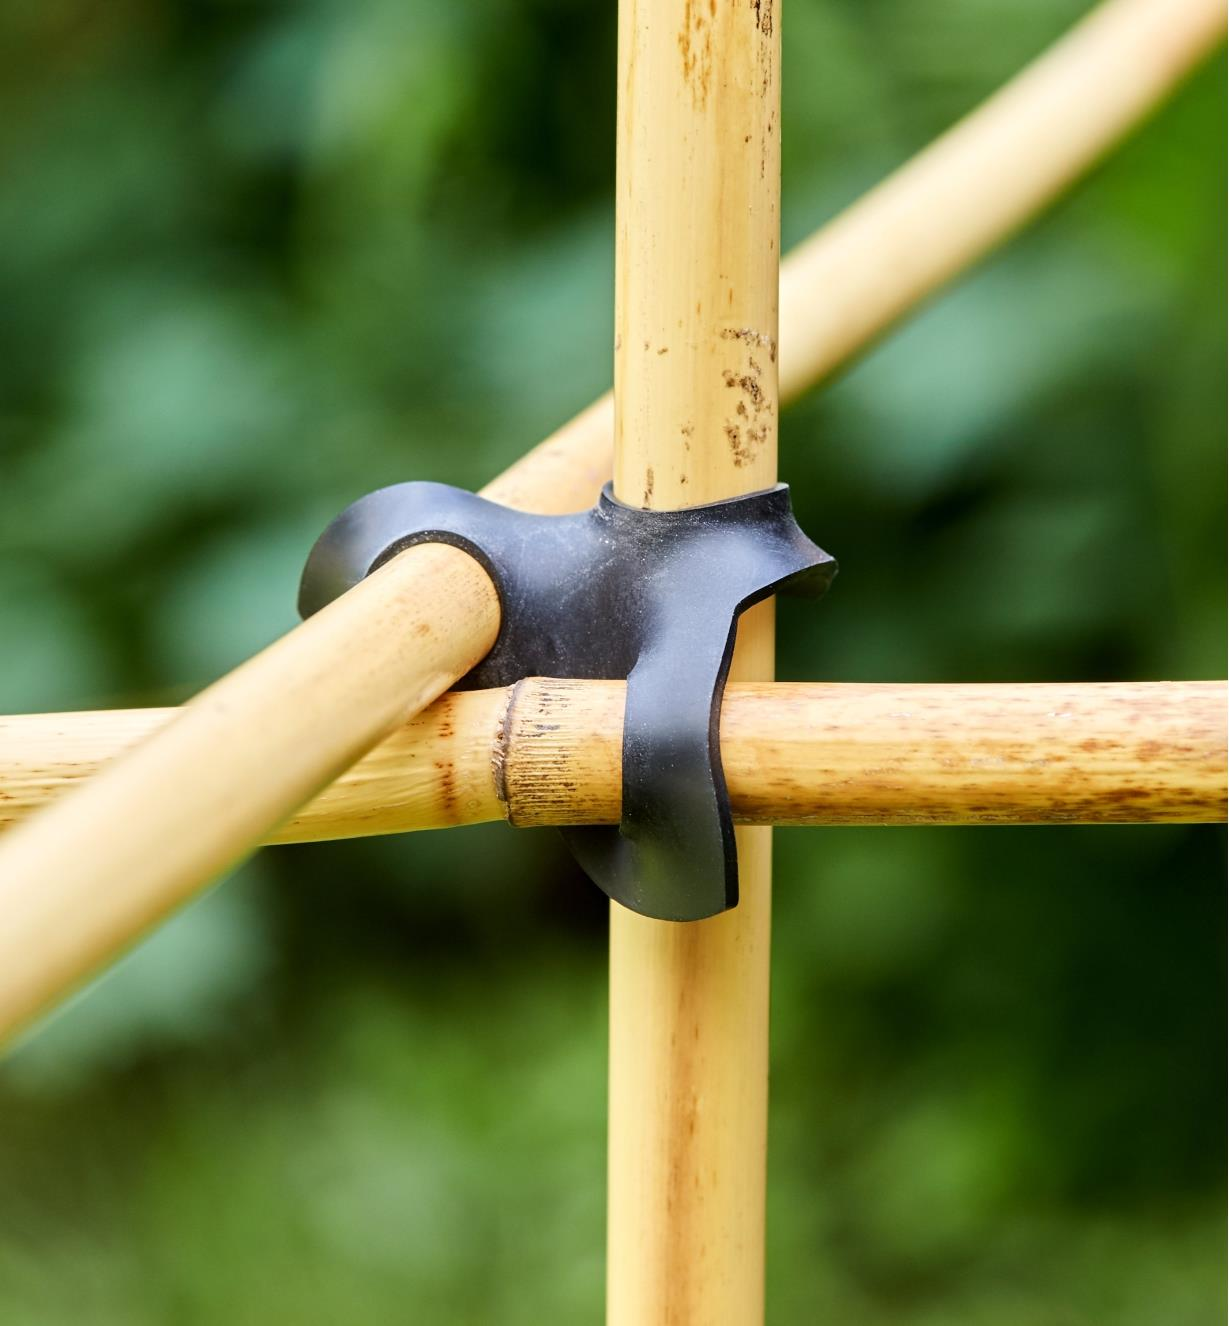 Staking connectors holding three bamboo poles in a crisscross pattern